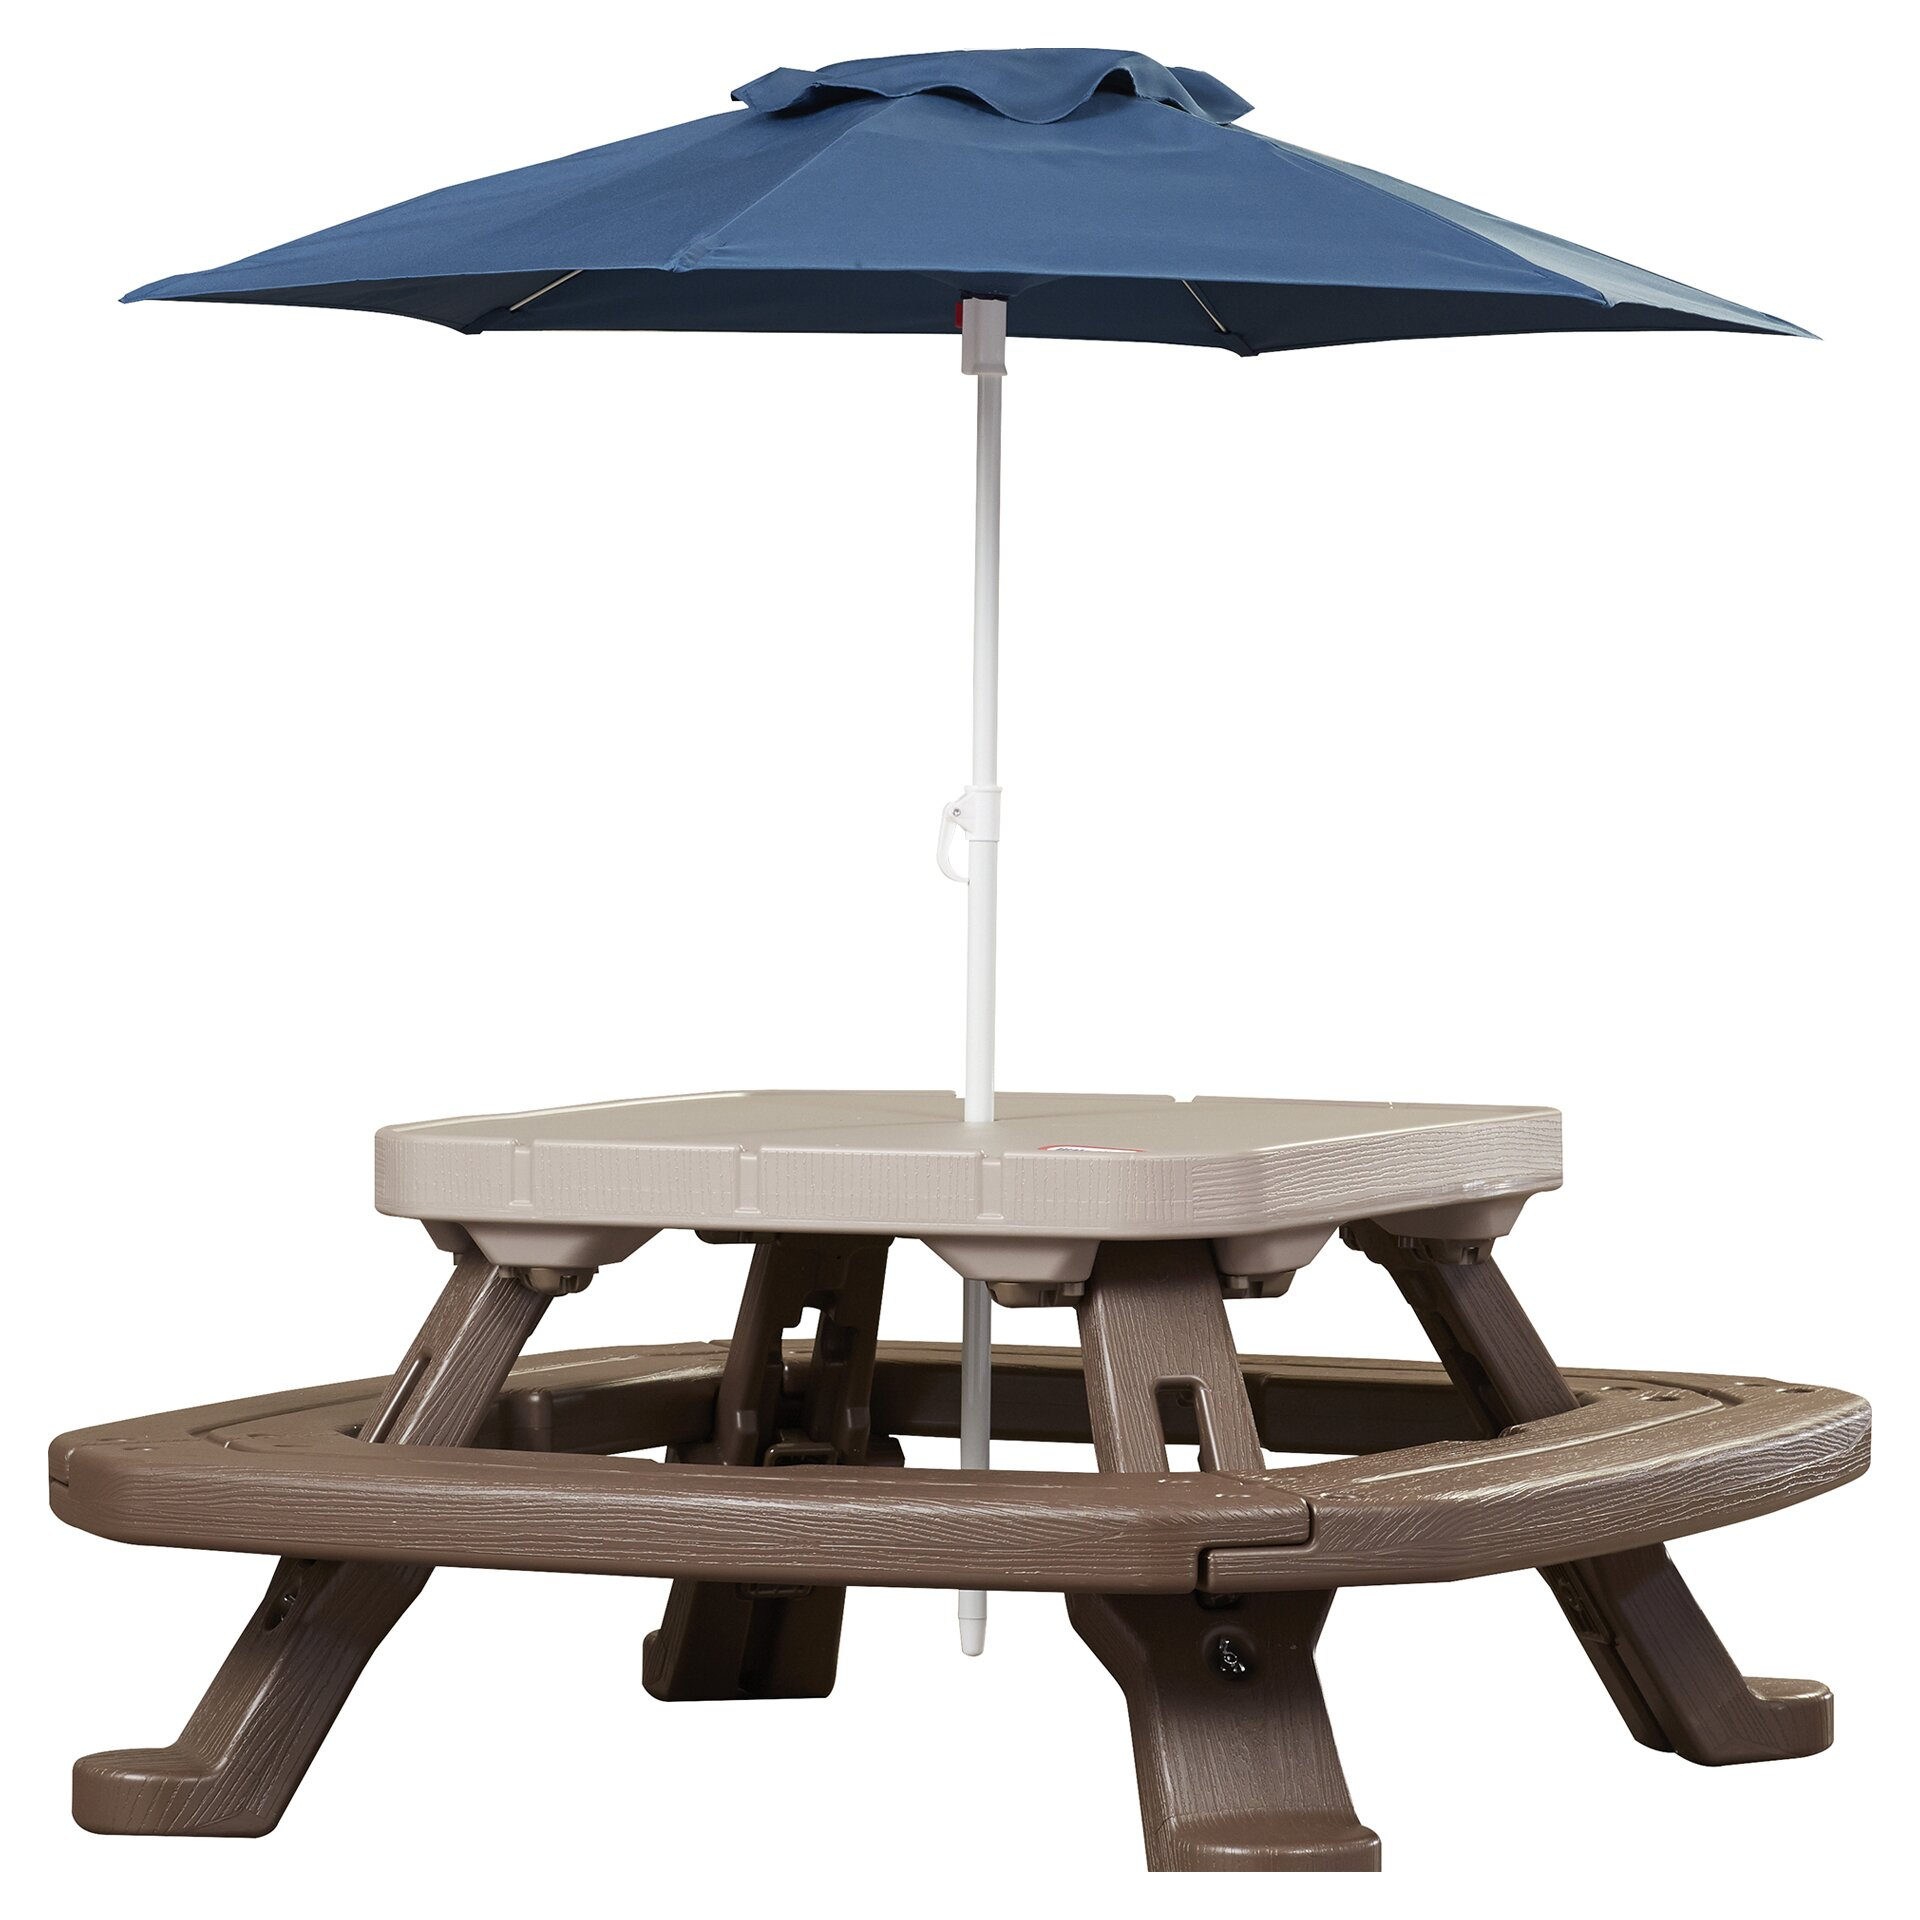 Little Tikes Fold N Store Picnic Table With Market Umbrella picture on umbrella tables on sale with Little Tikes Fold N Store Picnic Table With Market Umbrella, Folding Table a102ec7876a4db9c82186322f215c2d7